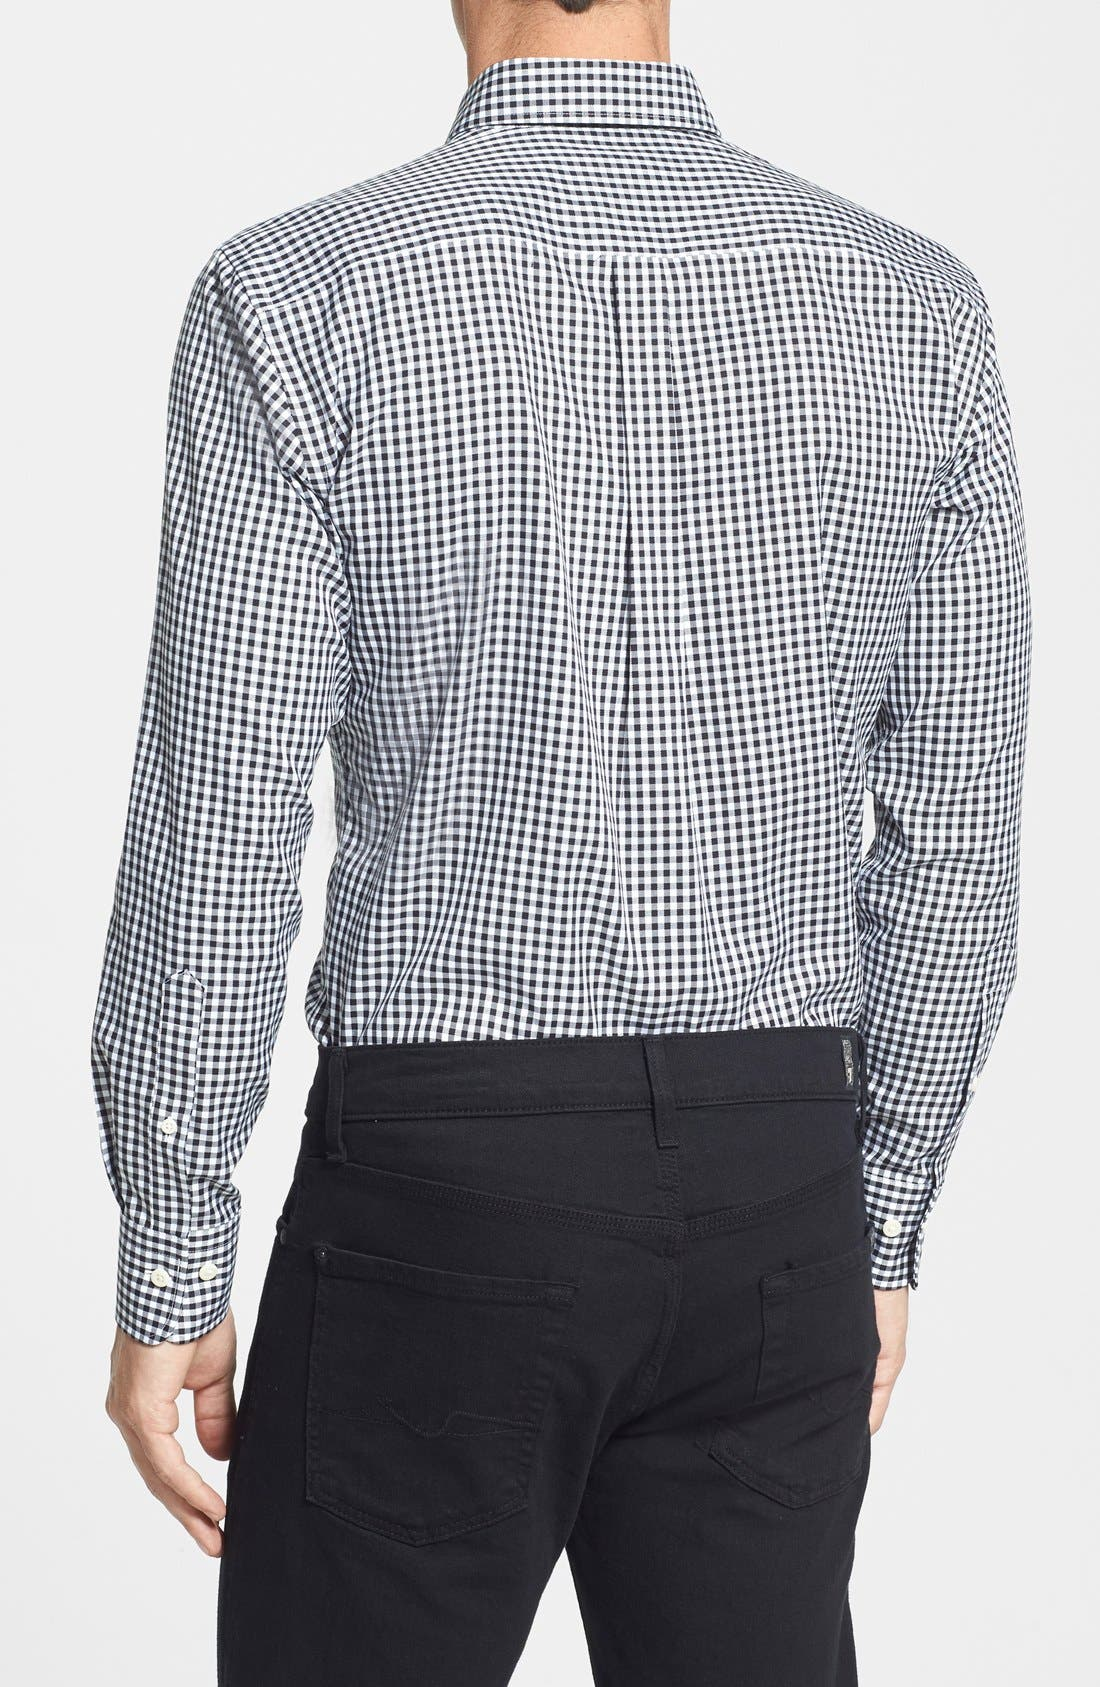 'Nanoluxe' Regular Fit Wrinkle Resistant Twill Check Sport Shirt,                             Alternate thumbnail 2, color,                             001